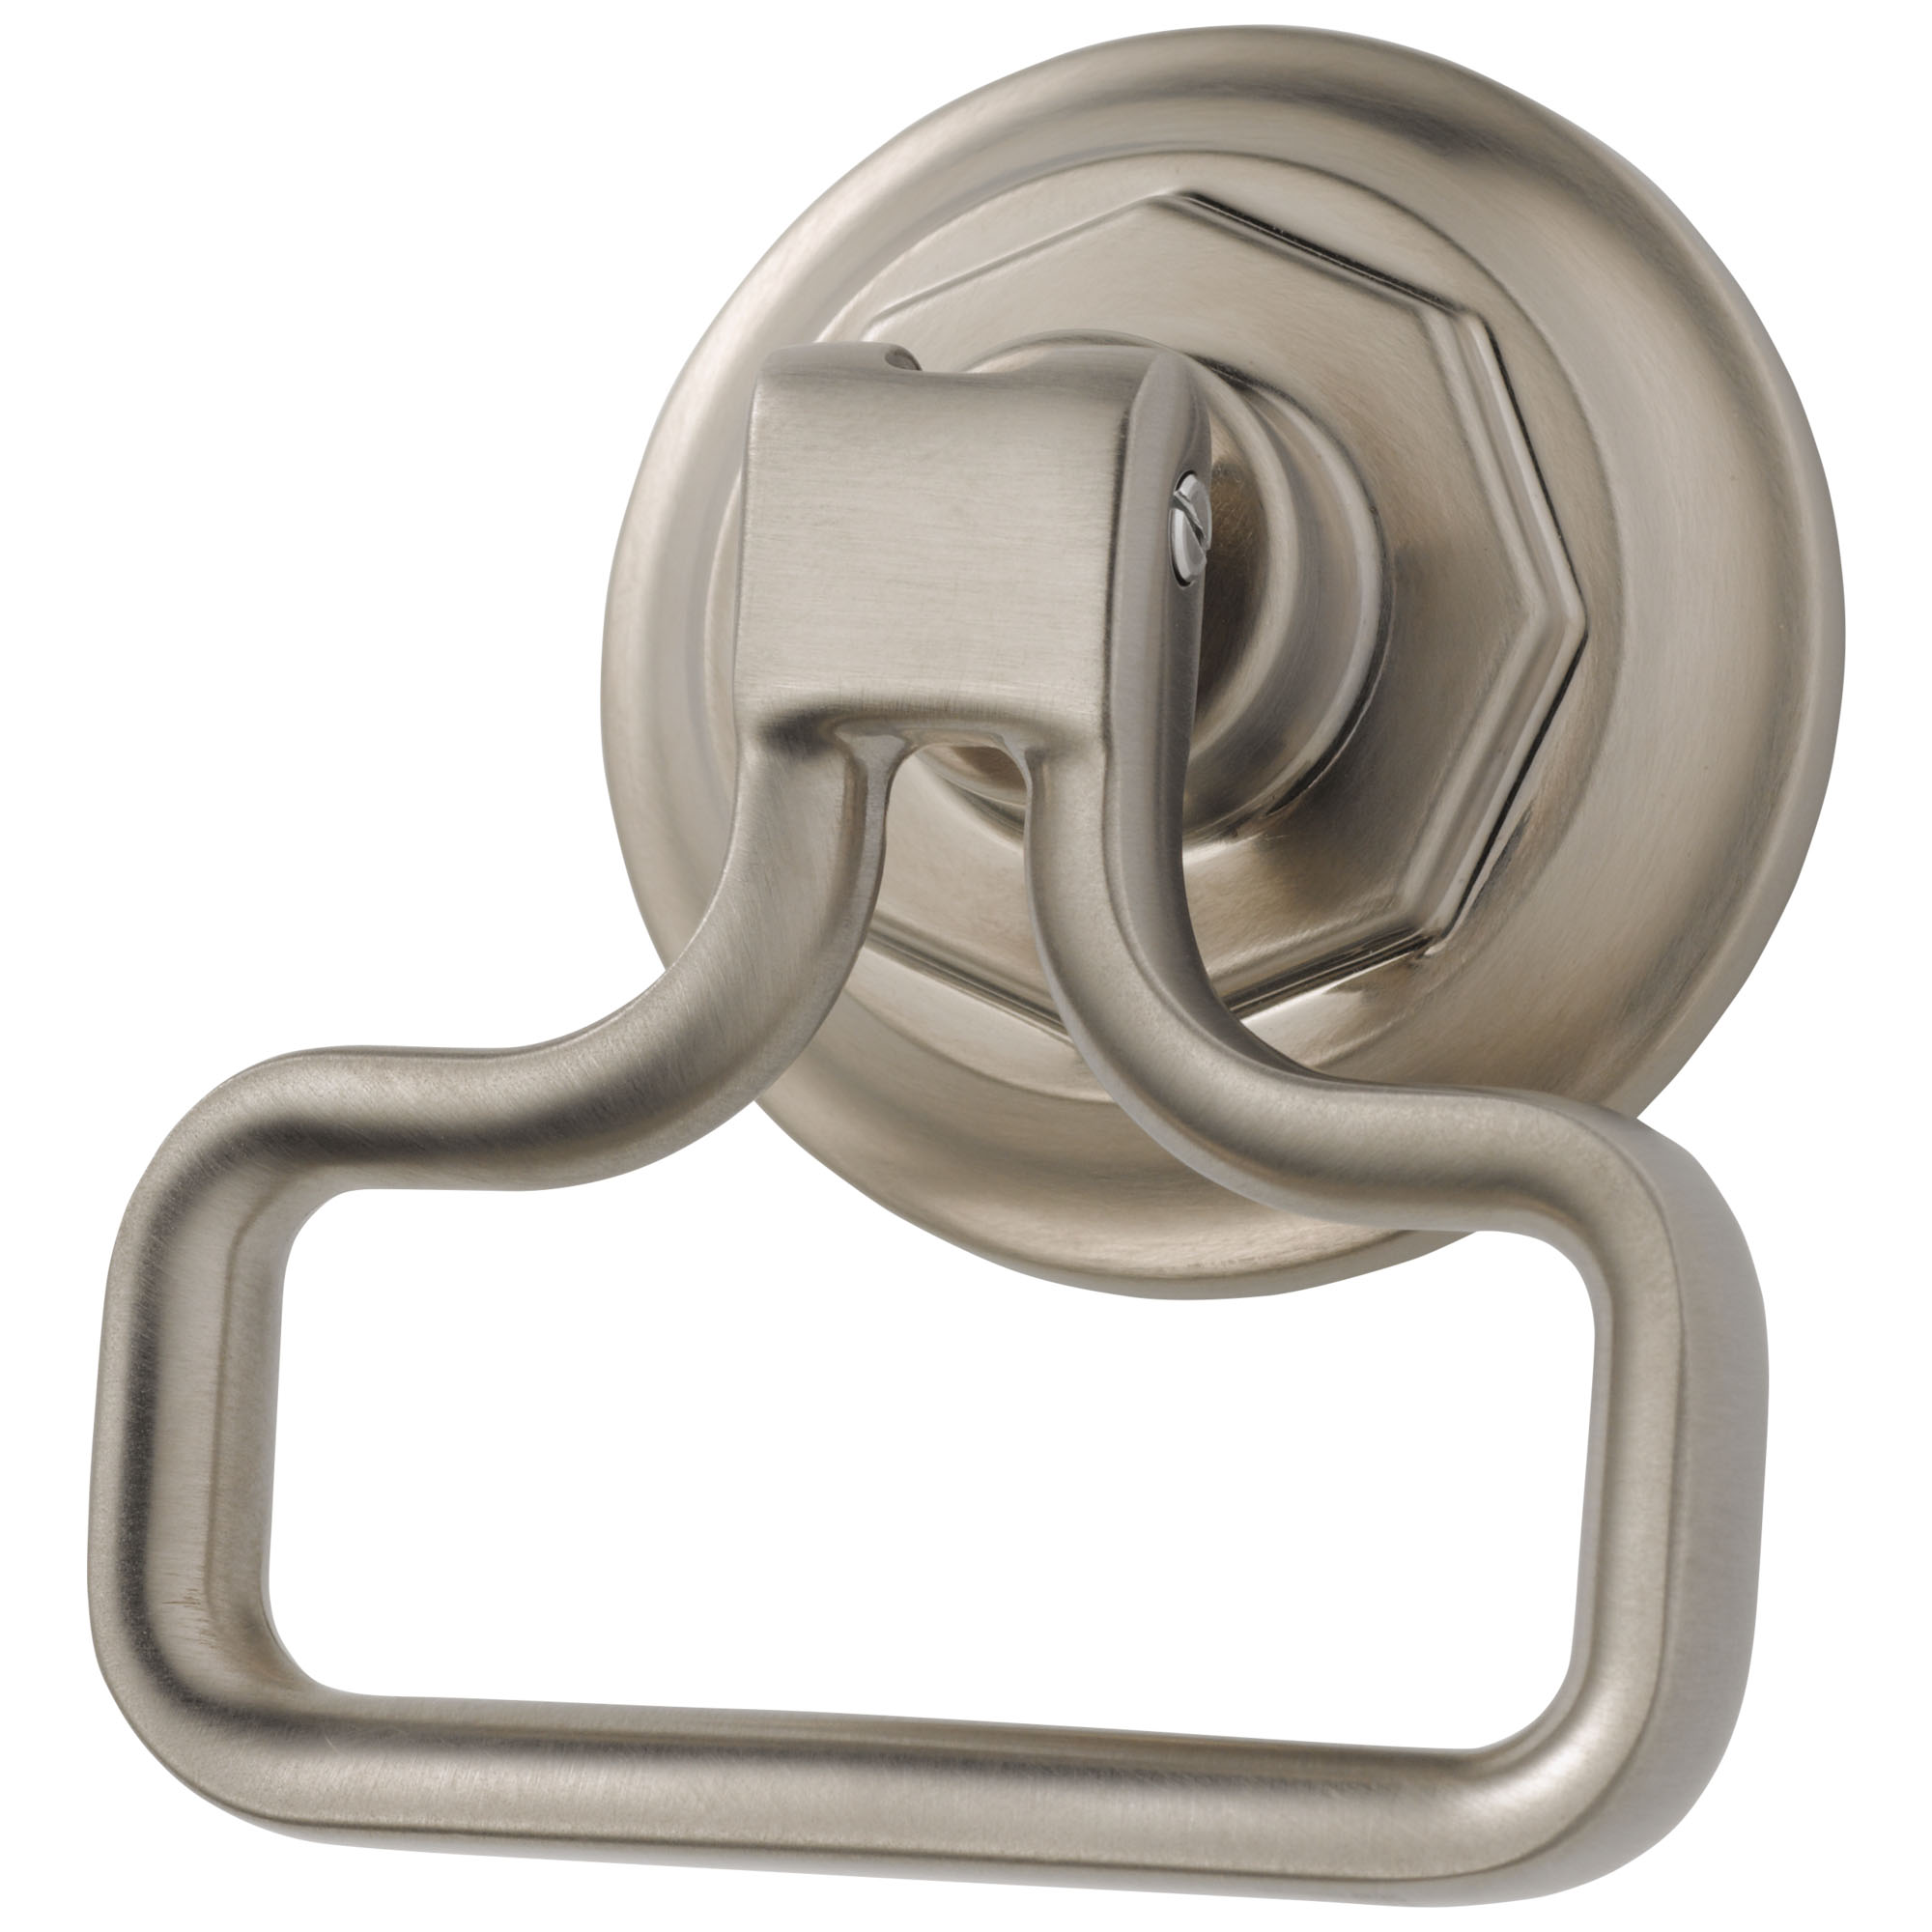 Brizo 699261-NK Rook Drawer Knob - Luxe Nickel